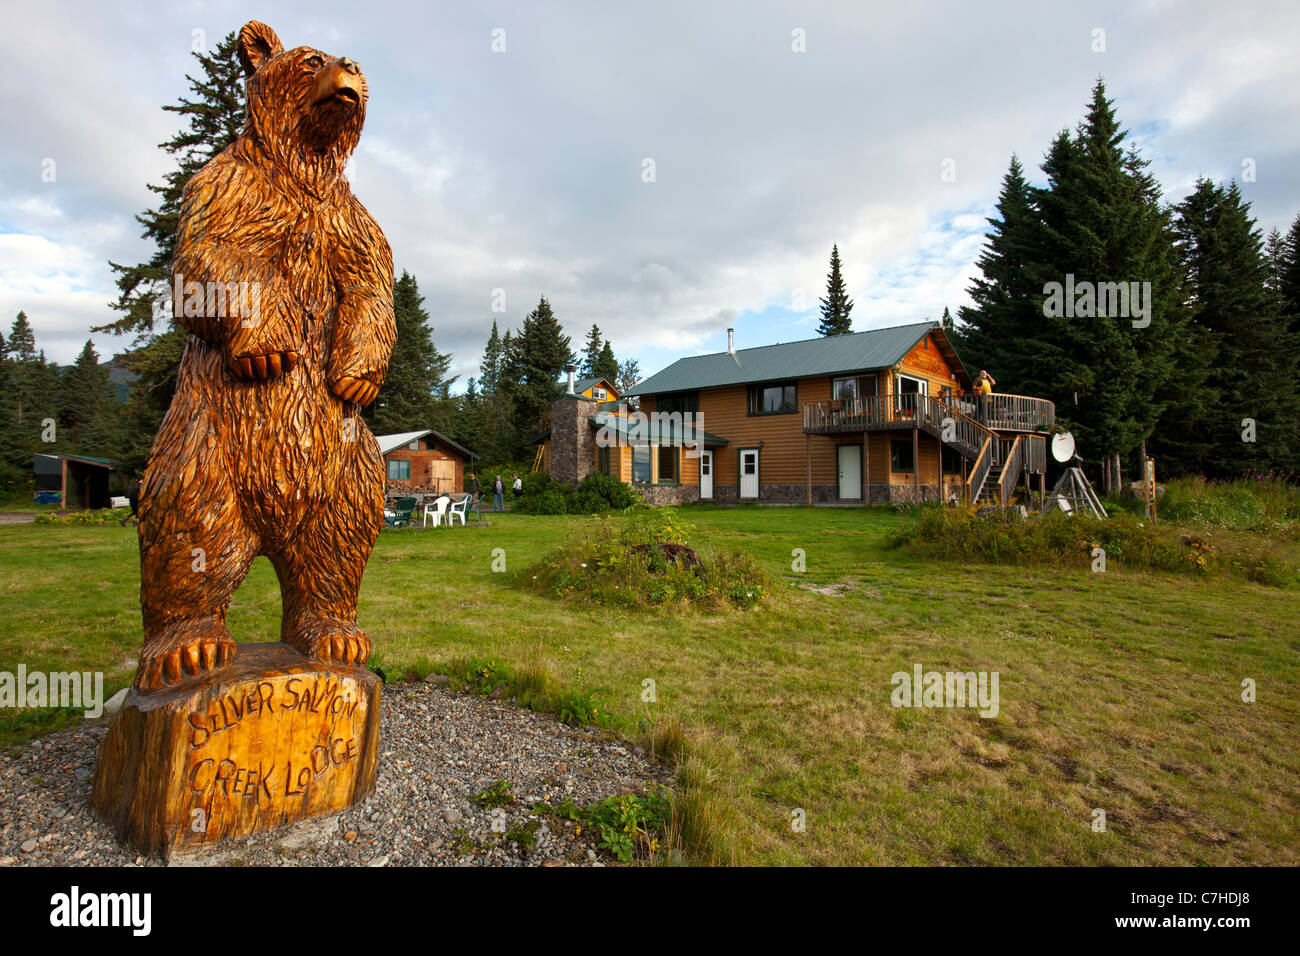 View of Silver Salmon Creek Lodge with wooden grizzly bear statue, Lake Clark National Park, Alaska, United States - Stock Image